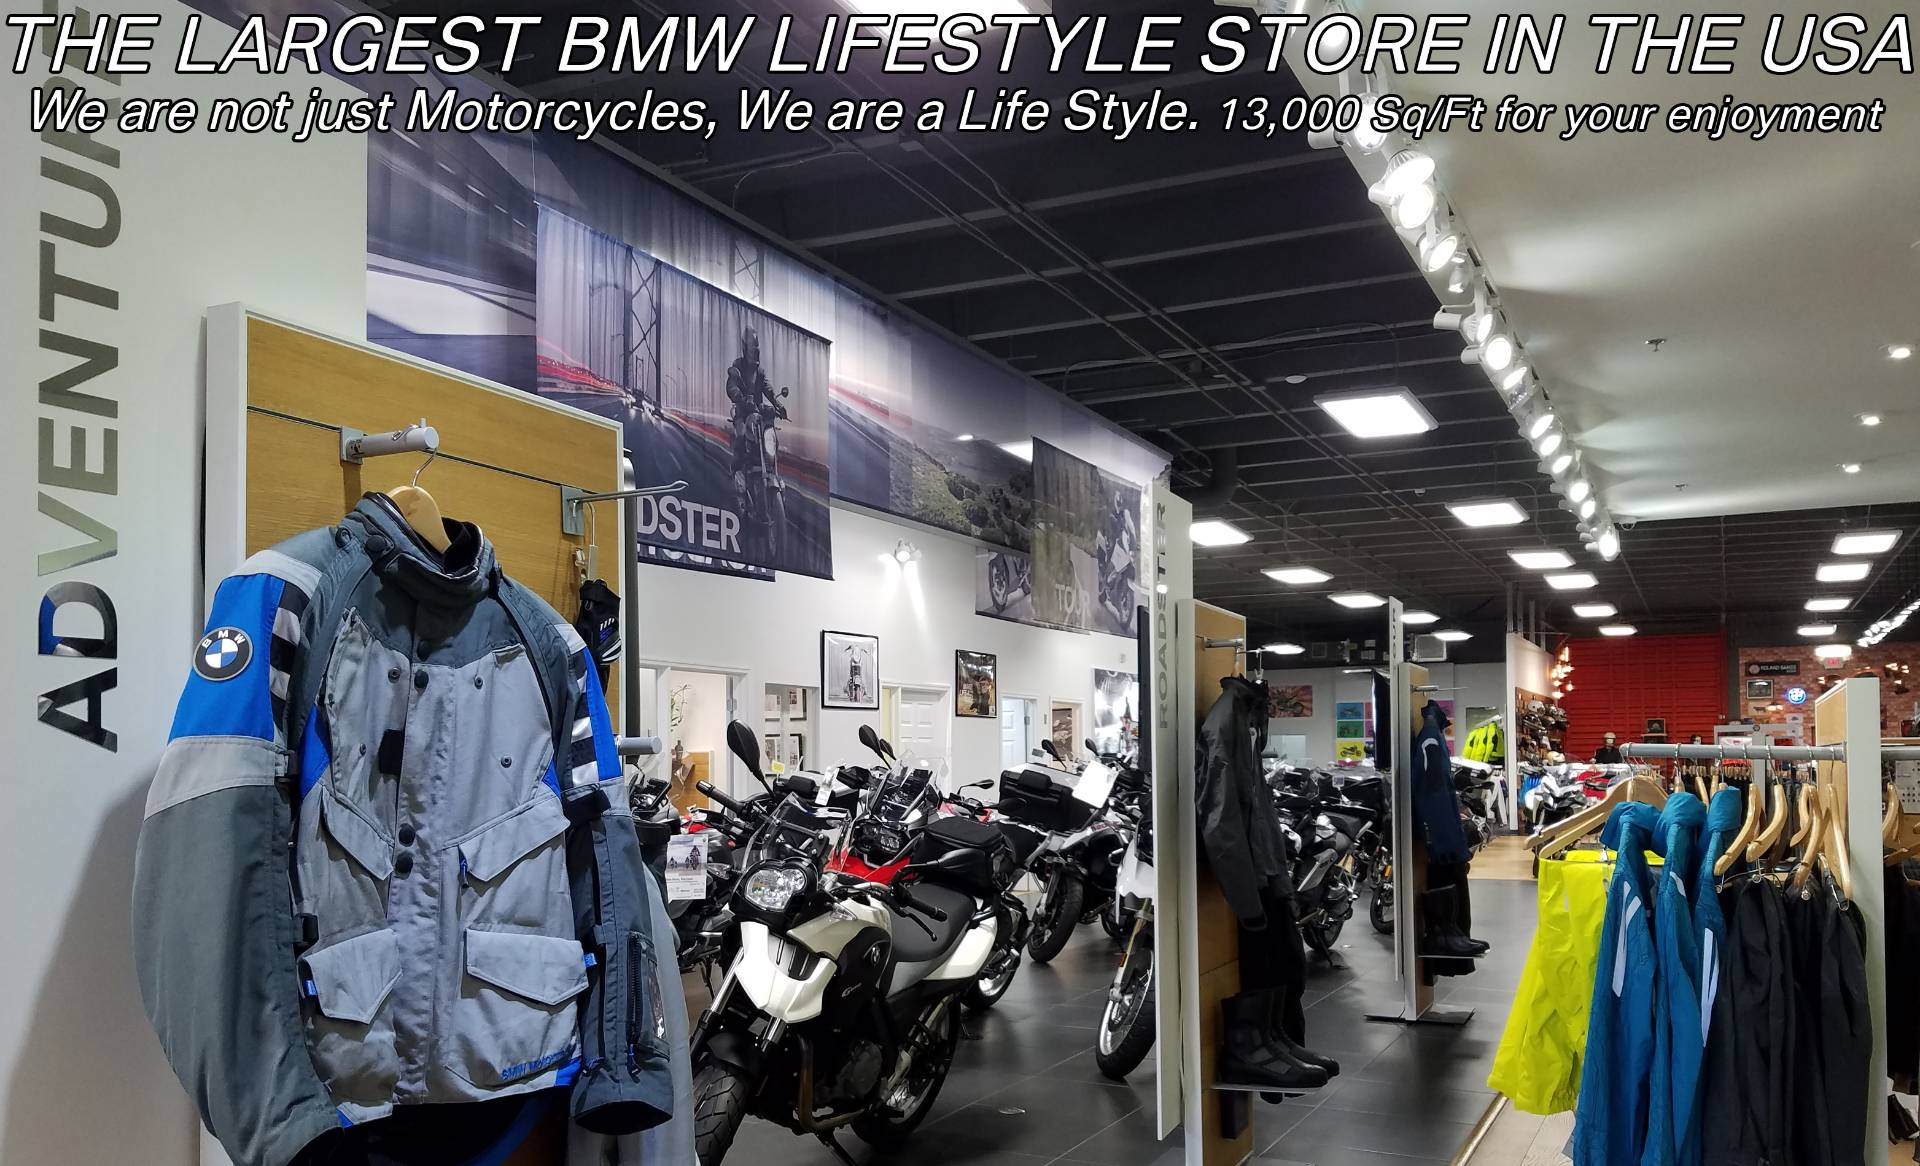 New 2019 BMW K 1600 B for sale, BMW K 1600B for sale, BMW Motorcycle K1600B, new BMW Bagger, Gran America. BMW Motorcycles of Miami, Motorcycles of Miami, Motorcycles Miami - Photo 53